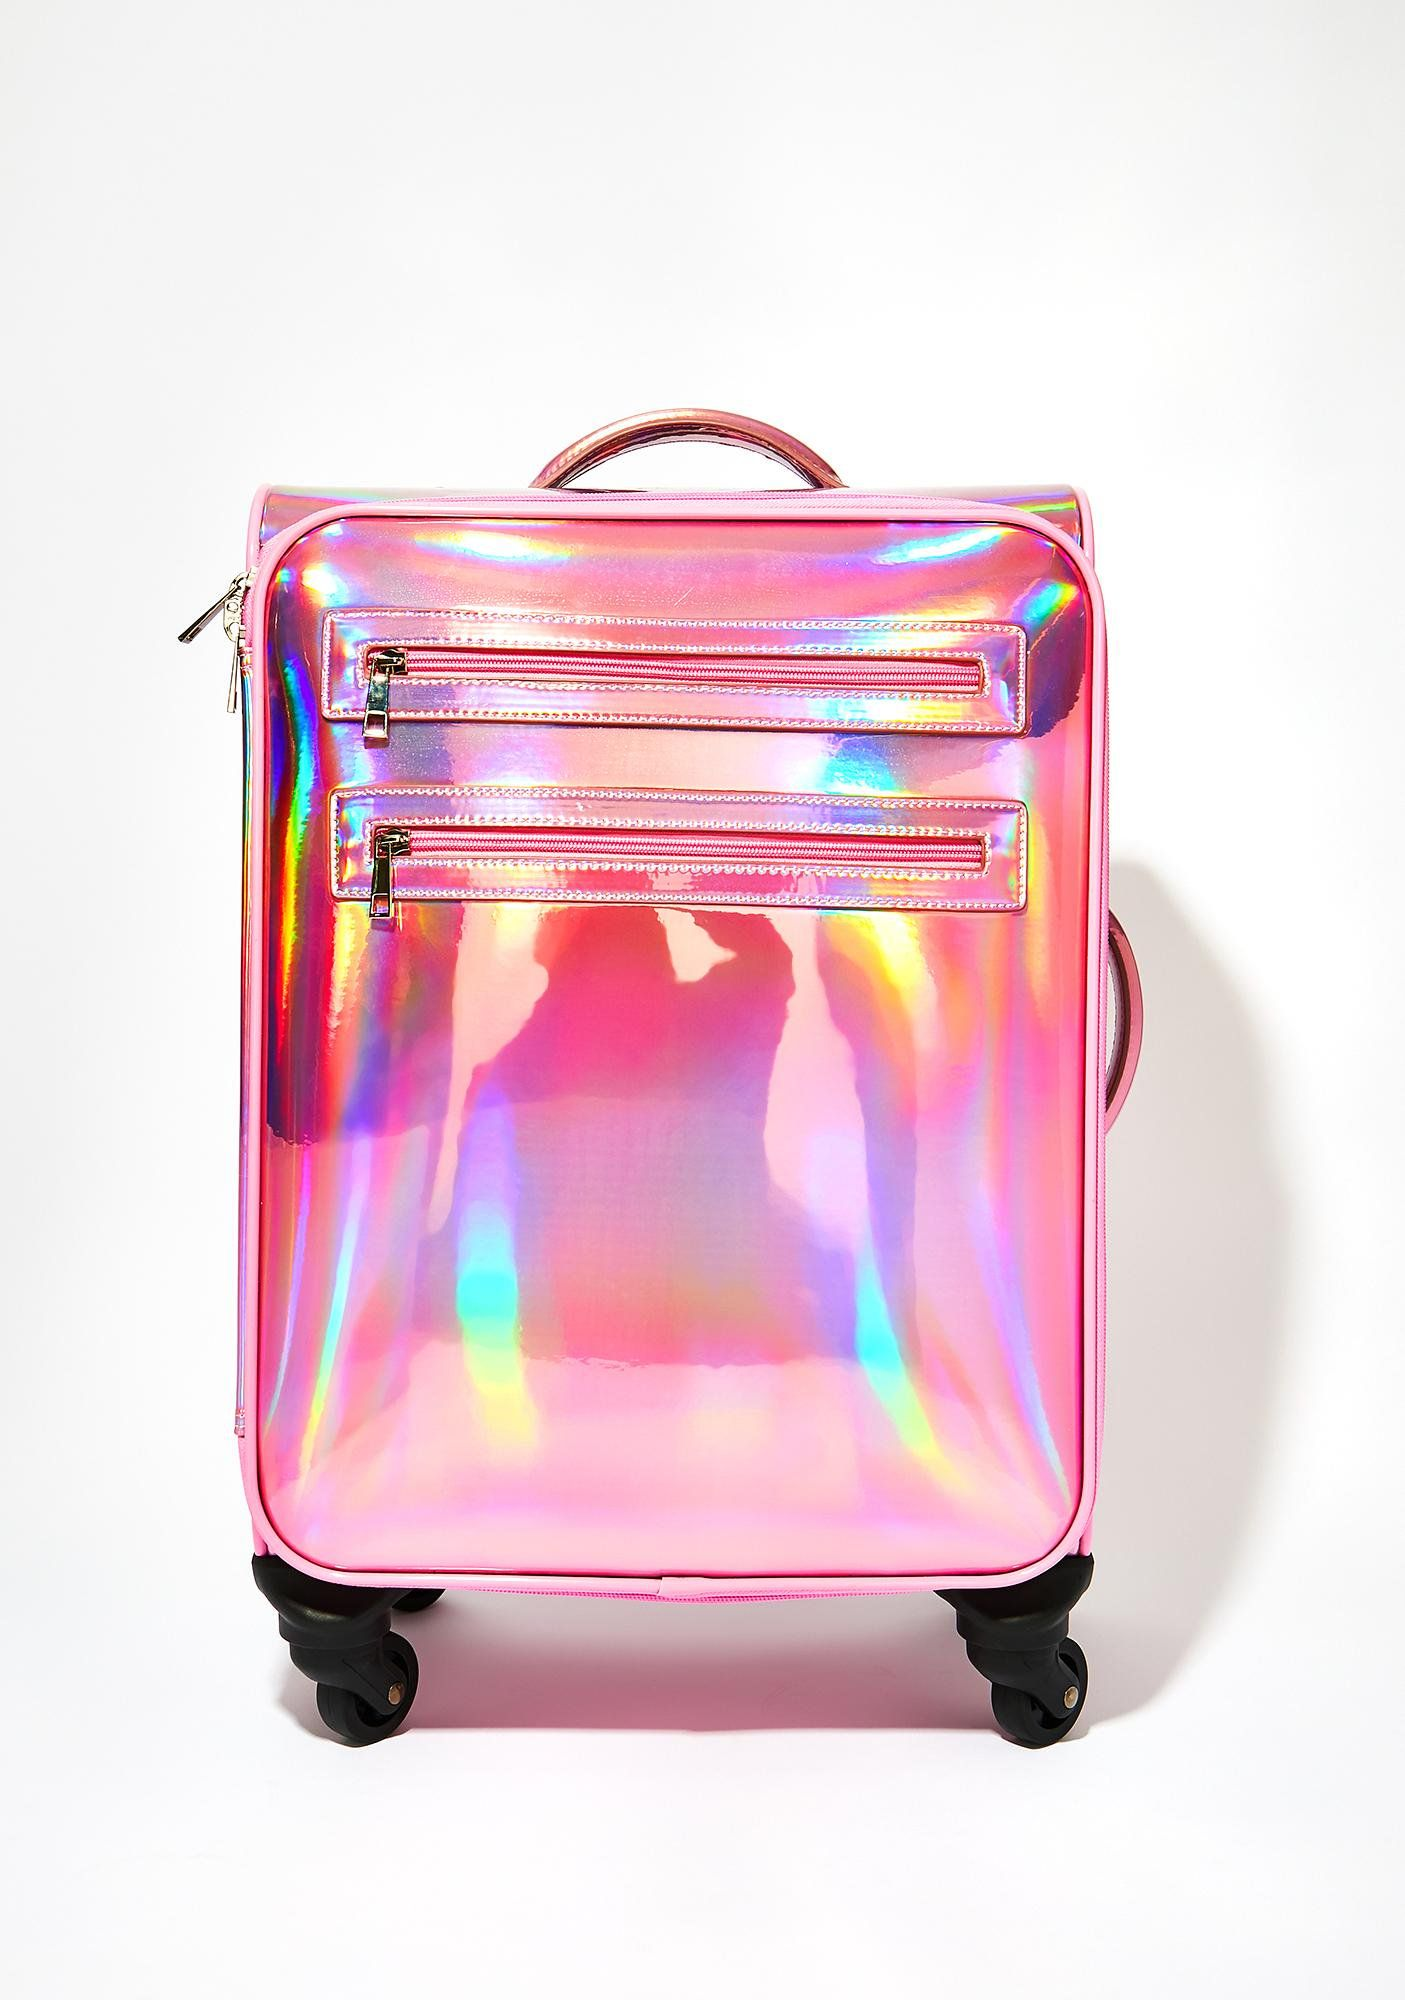 40ebd5963e Sugar Thrillz Shagadelic Suitcase will have ya travelin' first class to the  land of the fab! It's all glitz N' glam with this hologram rolling suitcase  that ...